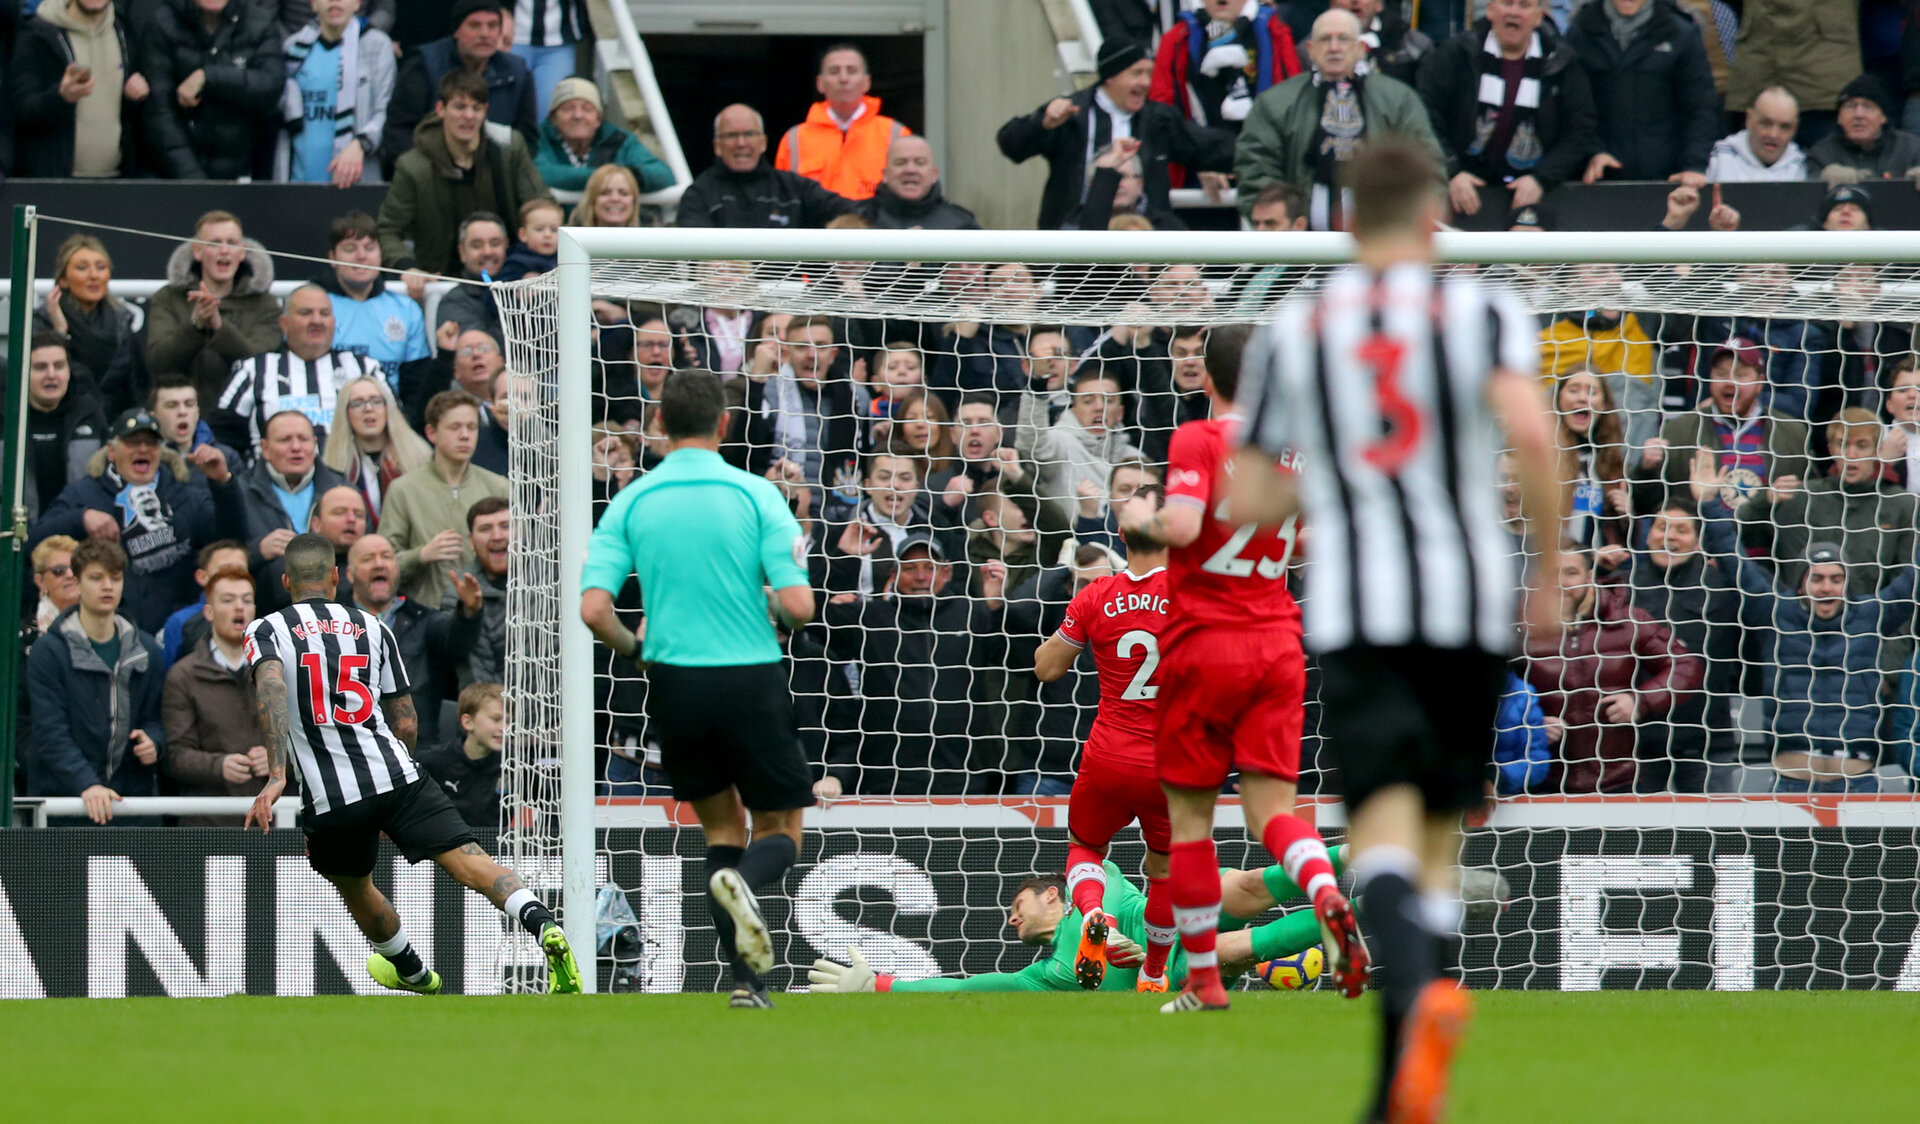 NEWCASTLE UPON TYNE, ENGLAND - MARCH 10: Newcastle go 2-0 up during the Premier League match between Newcastle United and Southampton at St. James Park on March 10, 2018 in Newcastle upon Tyne, England. (Photo by Matt Watson/Southampton FC via Getty Images)